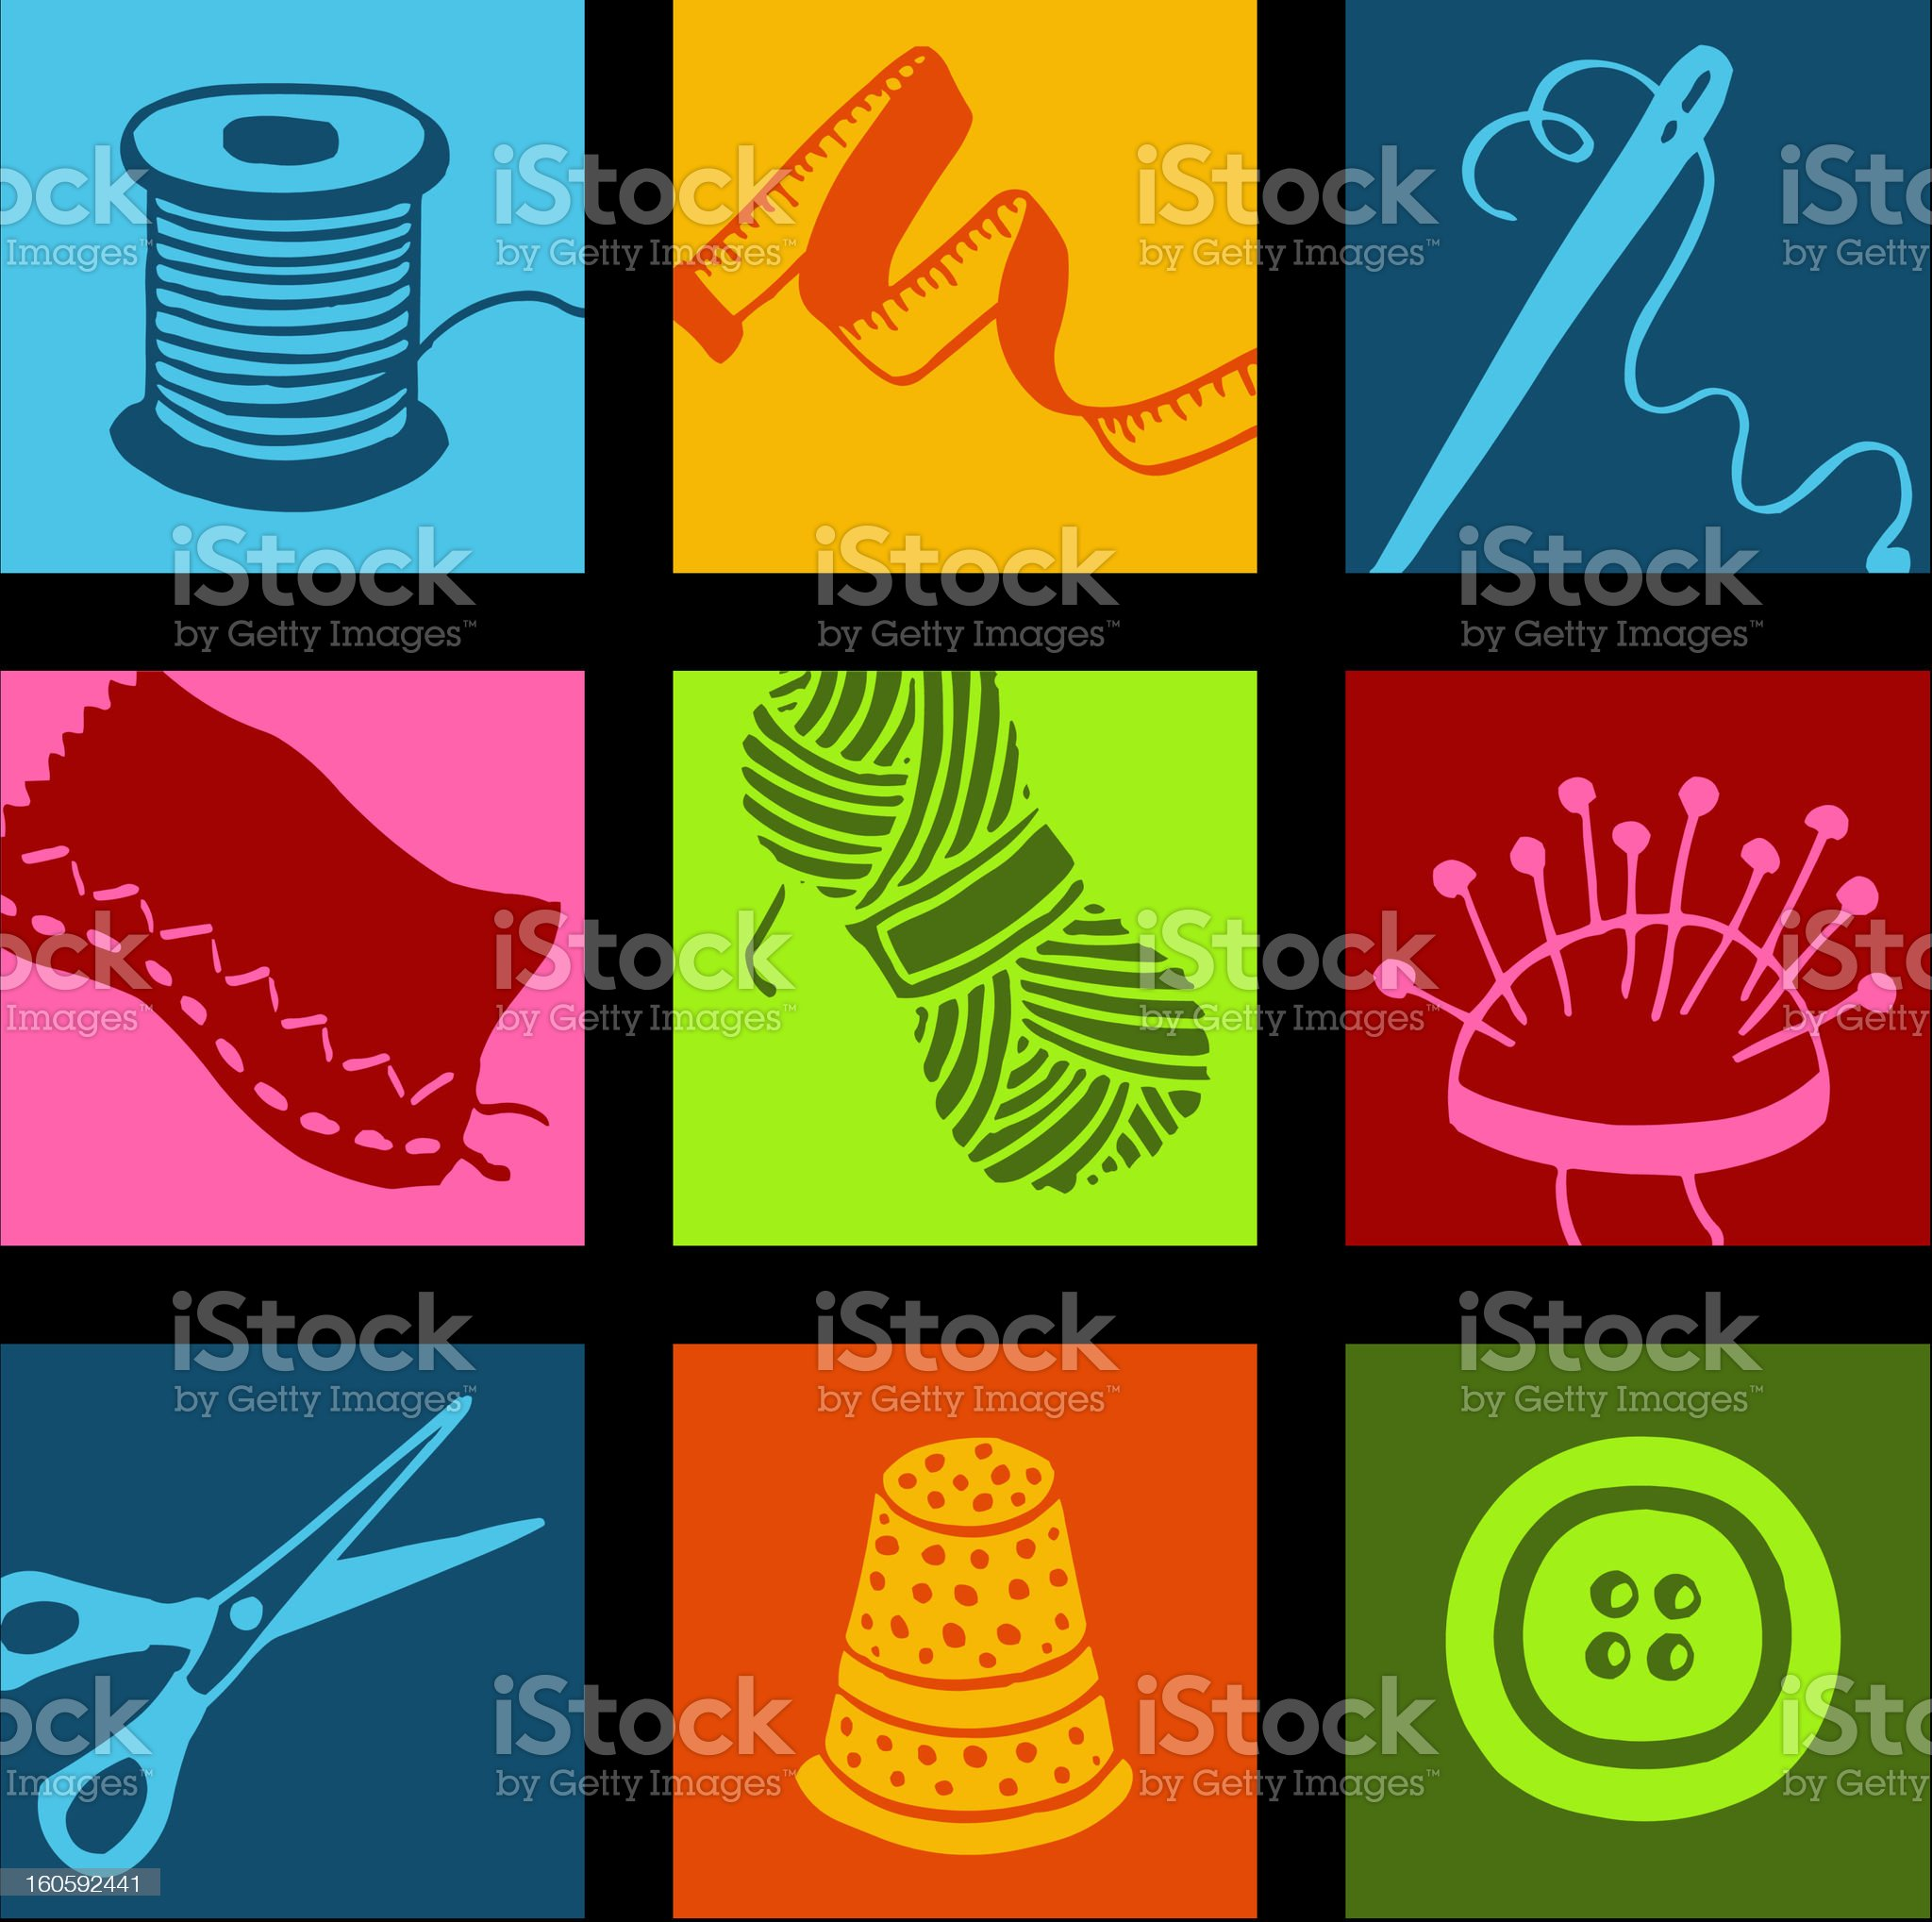 Sewing pop icons royalty-free stock vector art